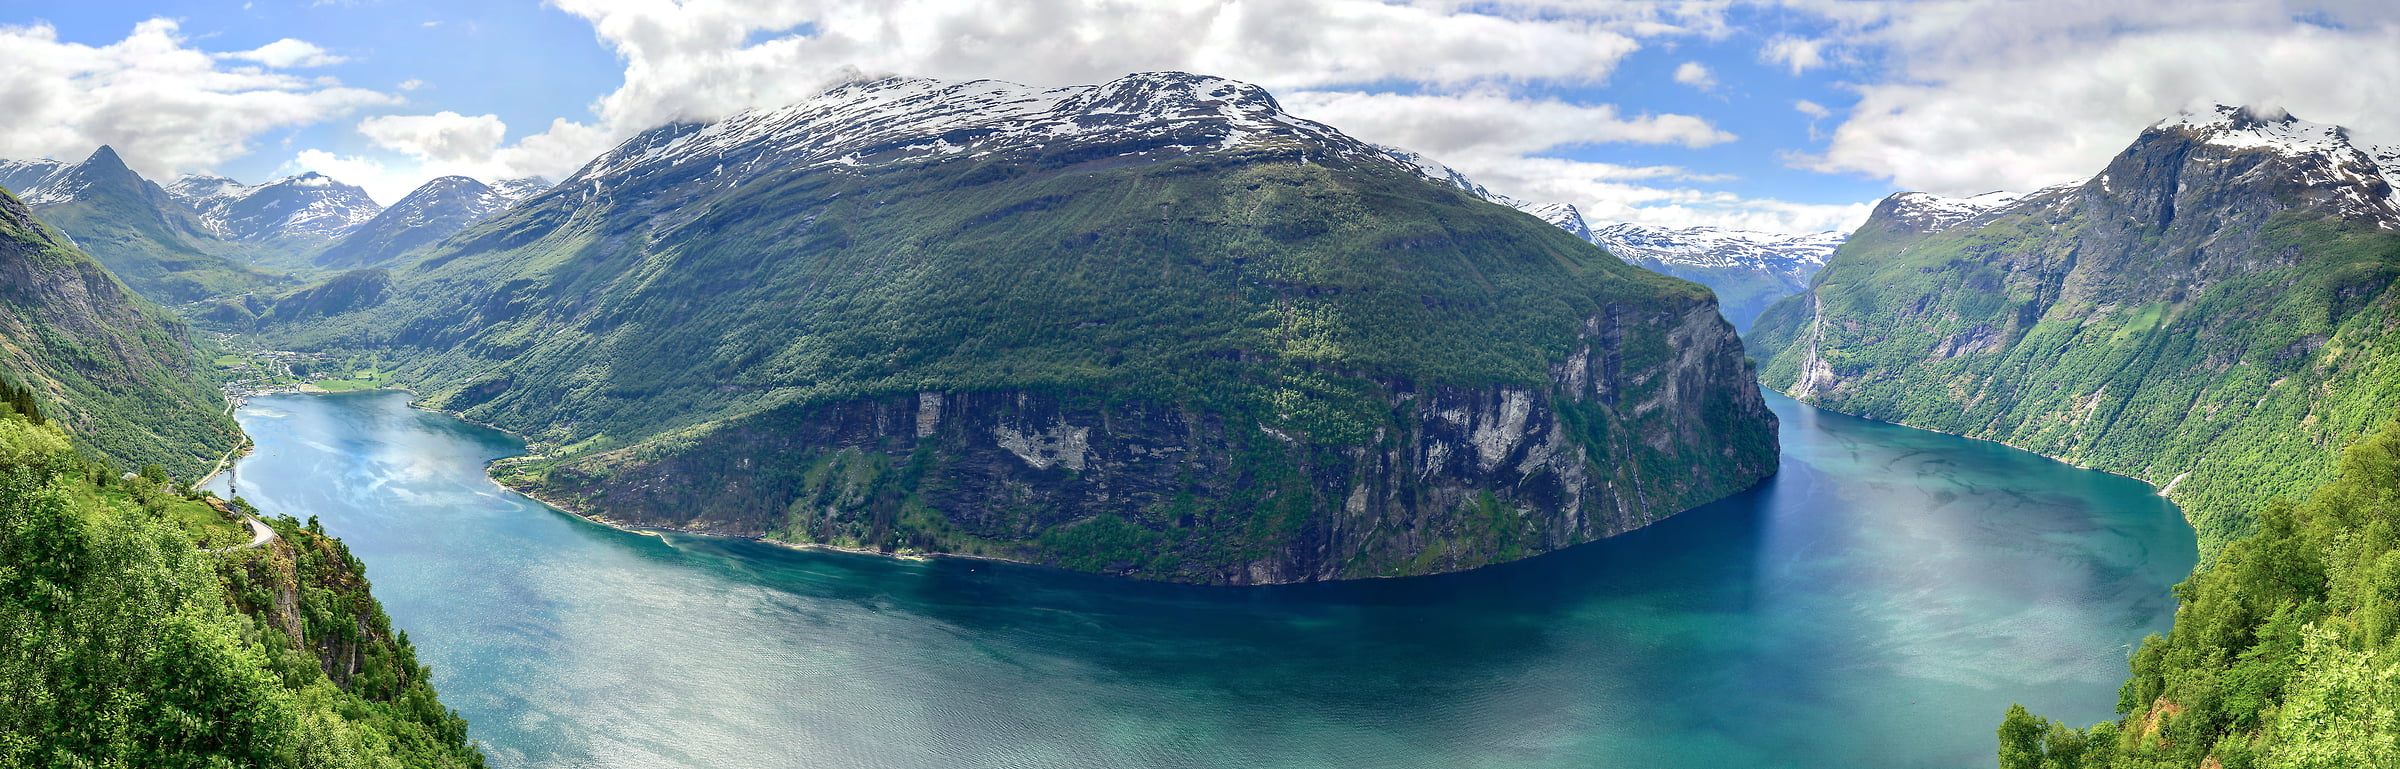 386 megapixels! A very high quality, large-format landscape photo of the fjords and mountains in Norway; VAST photo print created by Justin Katz